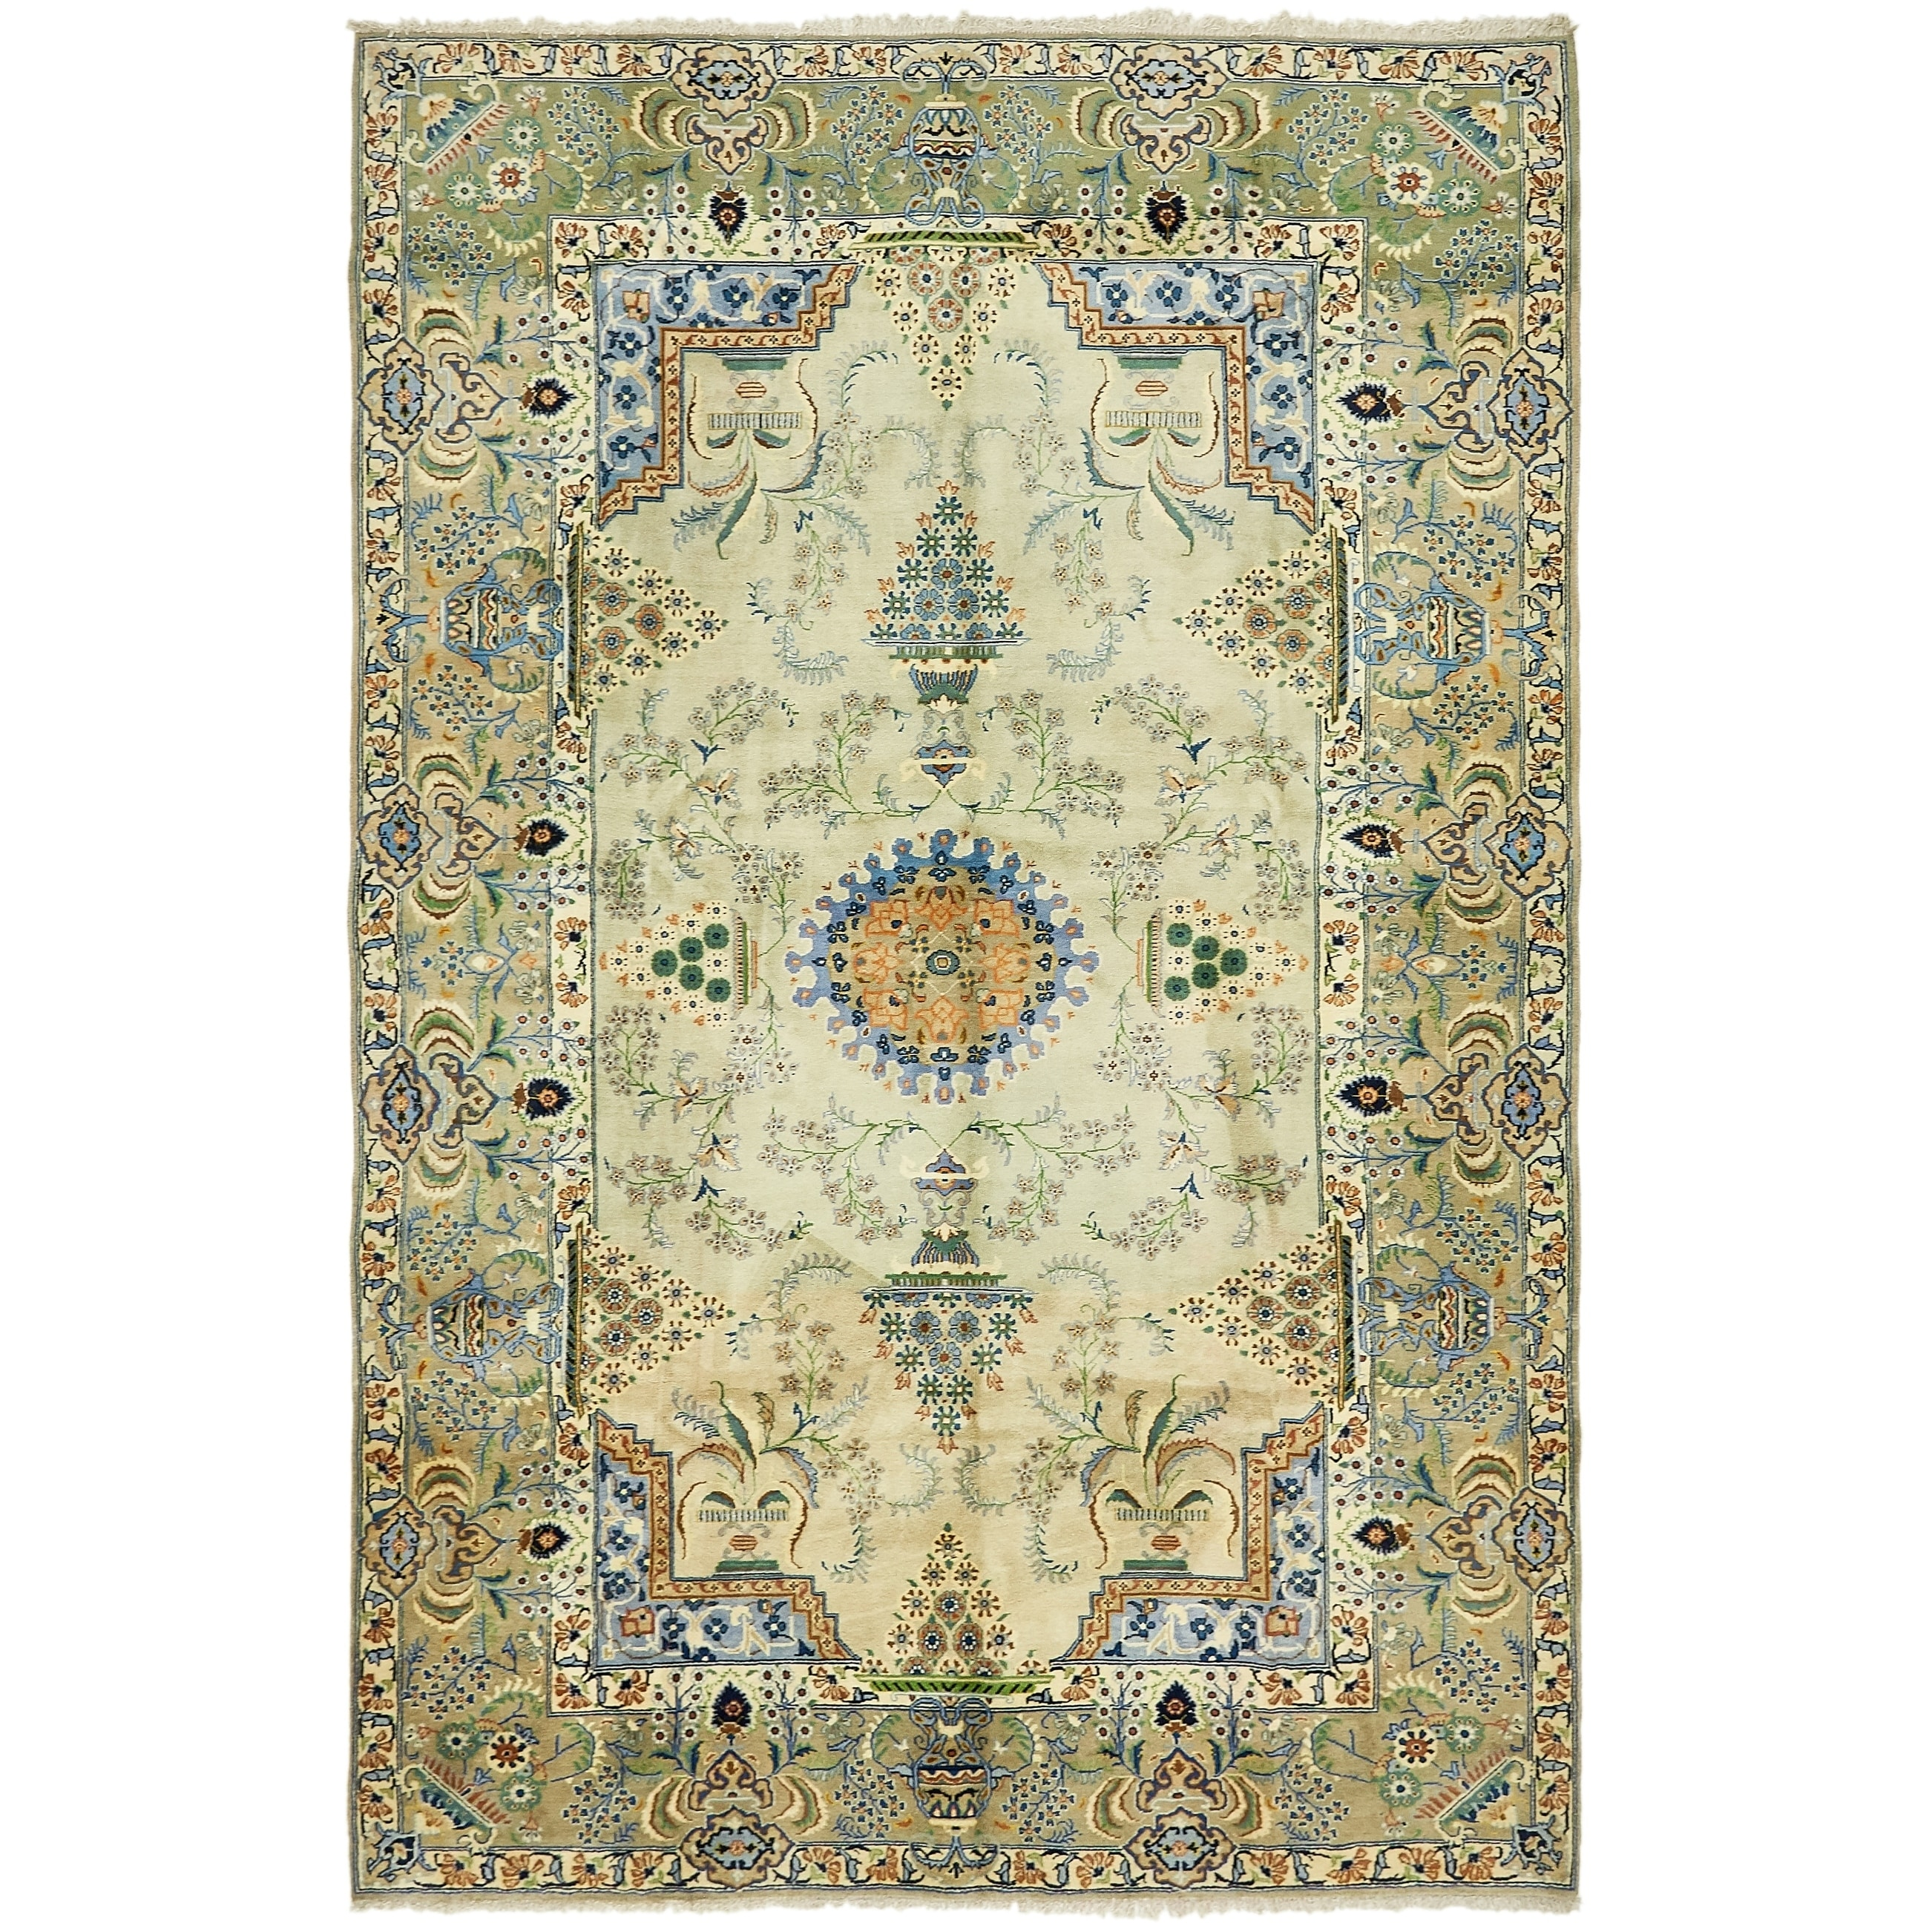 Hand Knotted Kashan Semi Antique Wool Area Rug - 6 10 x 10 8 (LIGHT GREEN - 6 10 x 10 8)